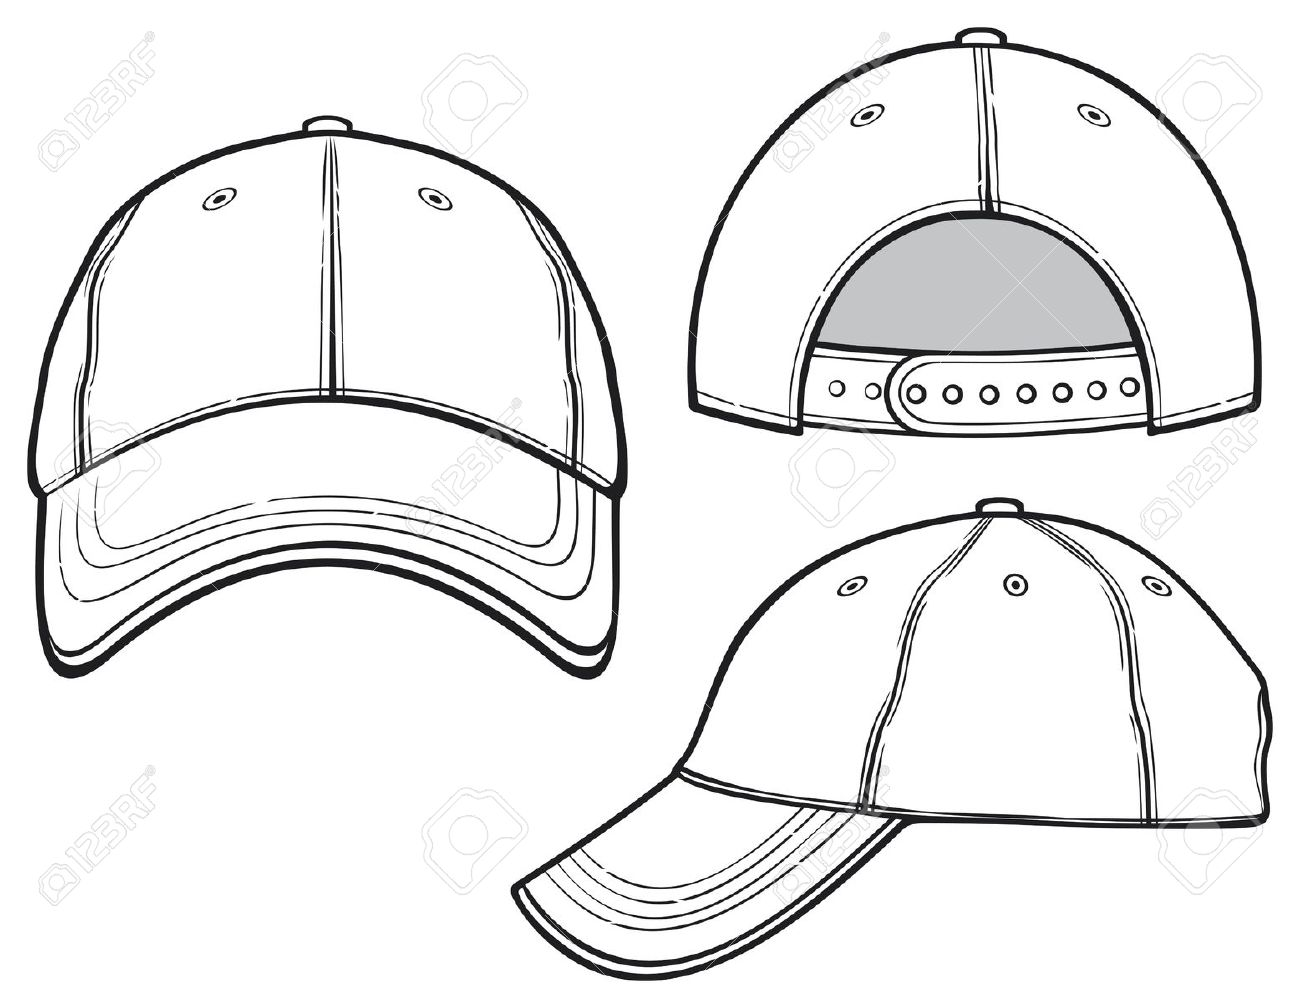 1300x1008 Good 6 Panel Hat Template Images Gallery Gtgt 6 Panel Hat Template